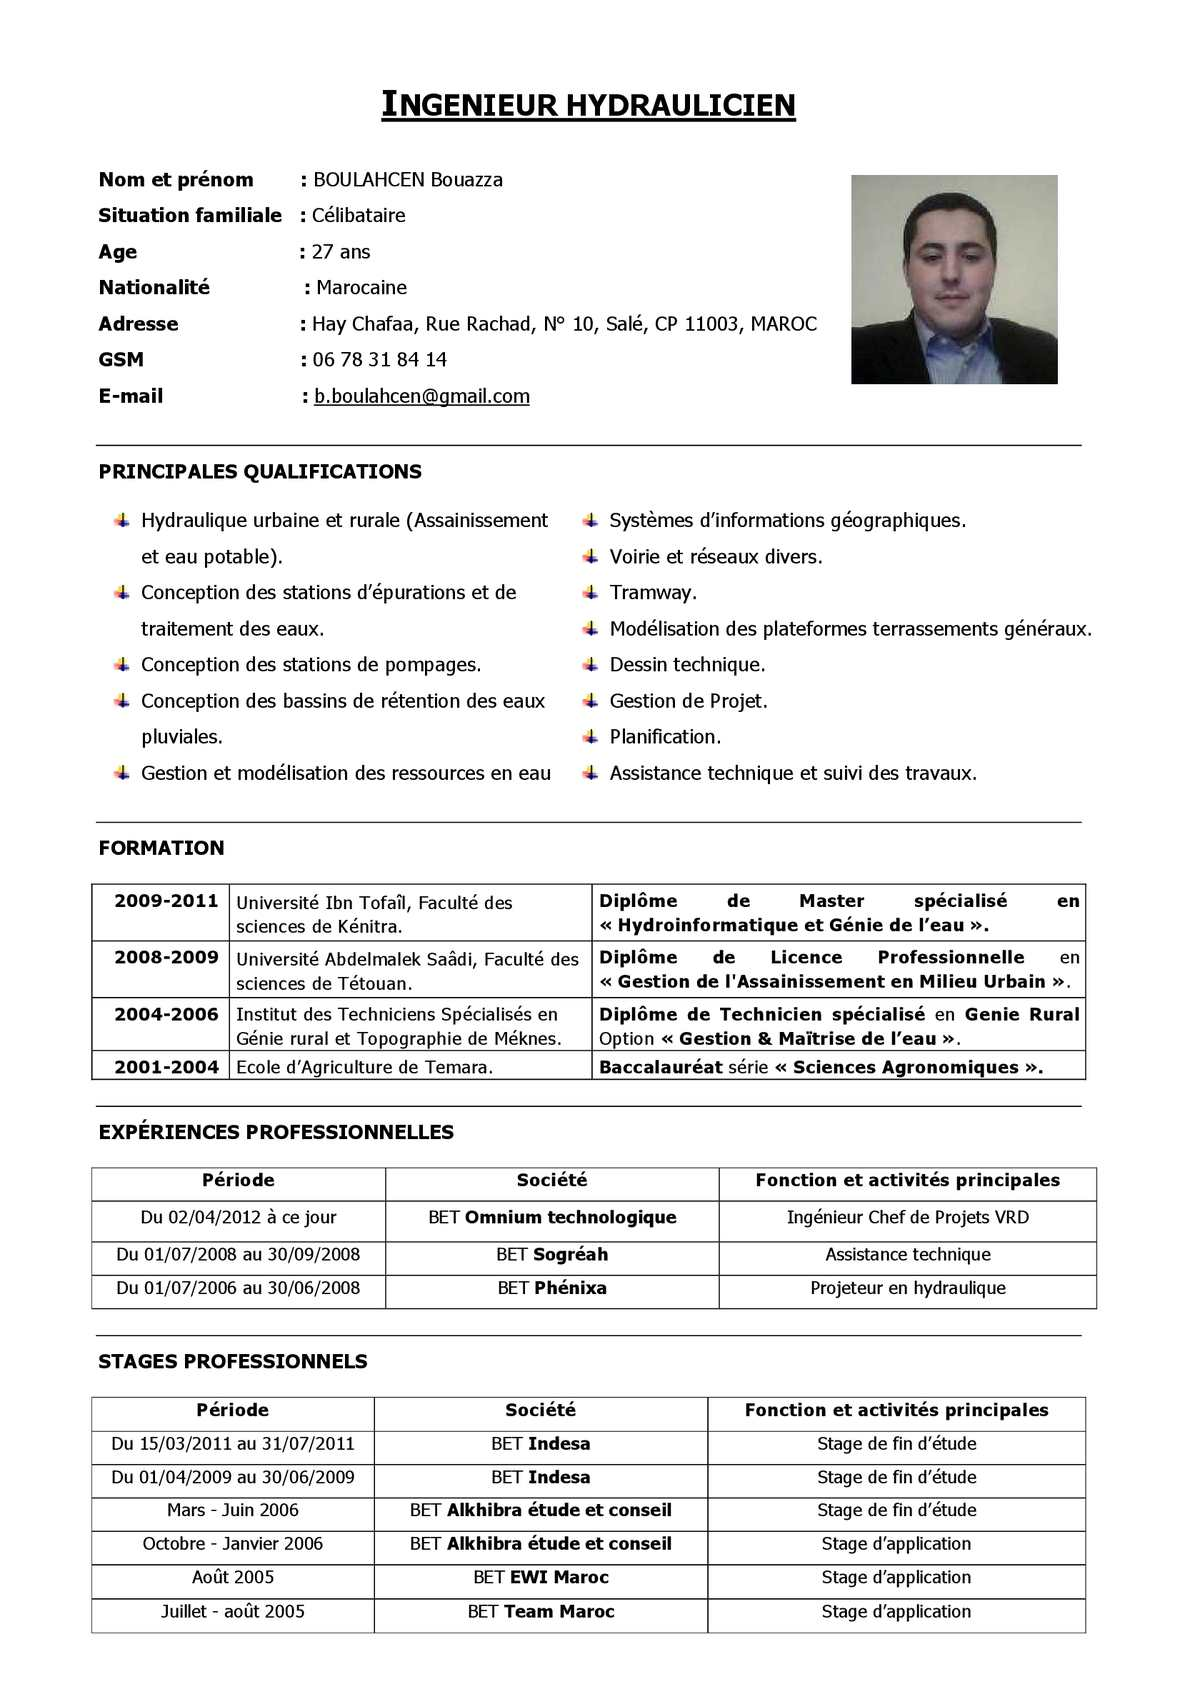 cv formation ingenieur